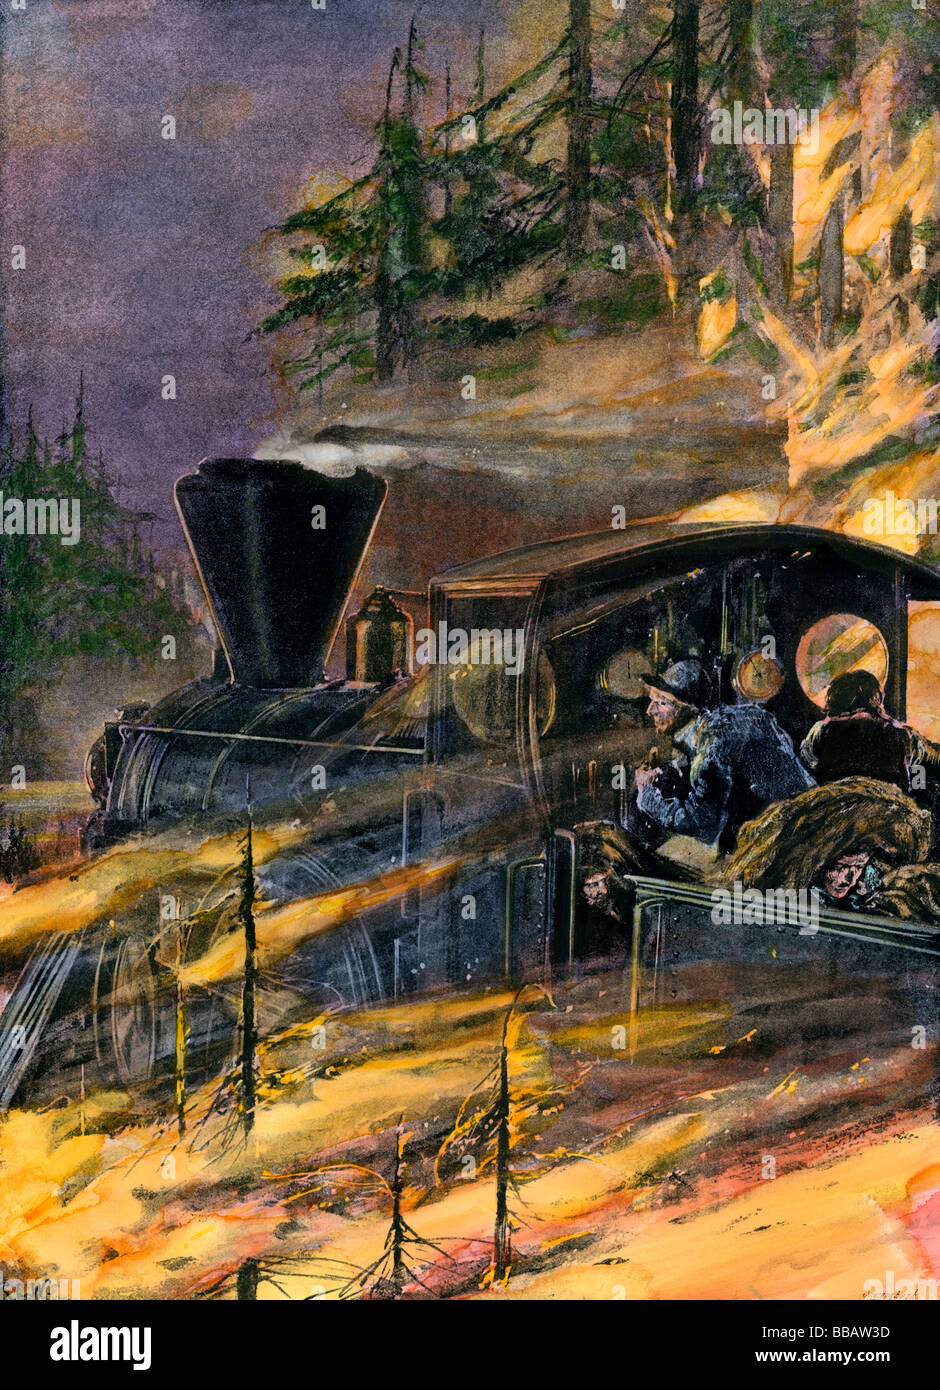 Railroad train racing through a forest fire in the American West 1890s. Hand-colored halftone of an illustration - Stock Image